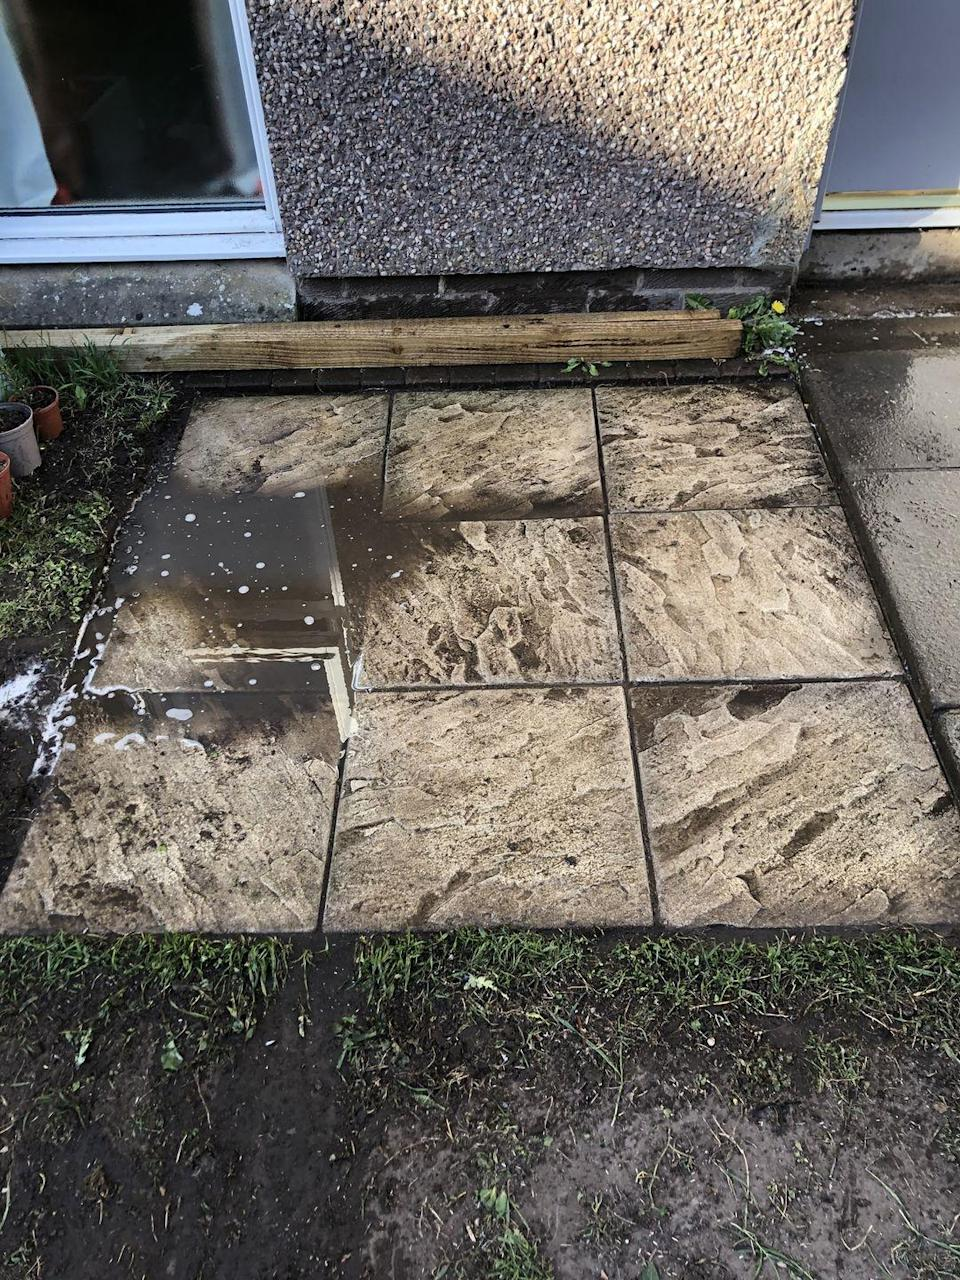 <p>Have you ever attempted to lay your own patio? Well, Katherine Cook says that her DIY patio area has 'sunk, floods, and barely fits seating'. Summer might be on its way, but we can't imagine this is the kind of space for entertaining. </p>